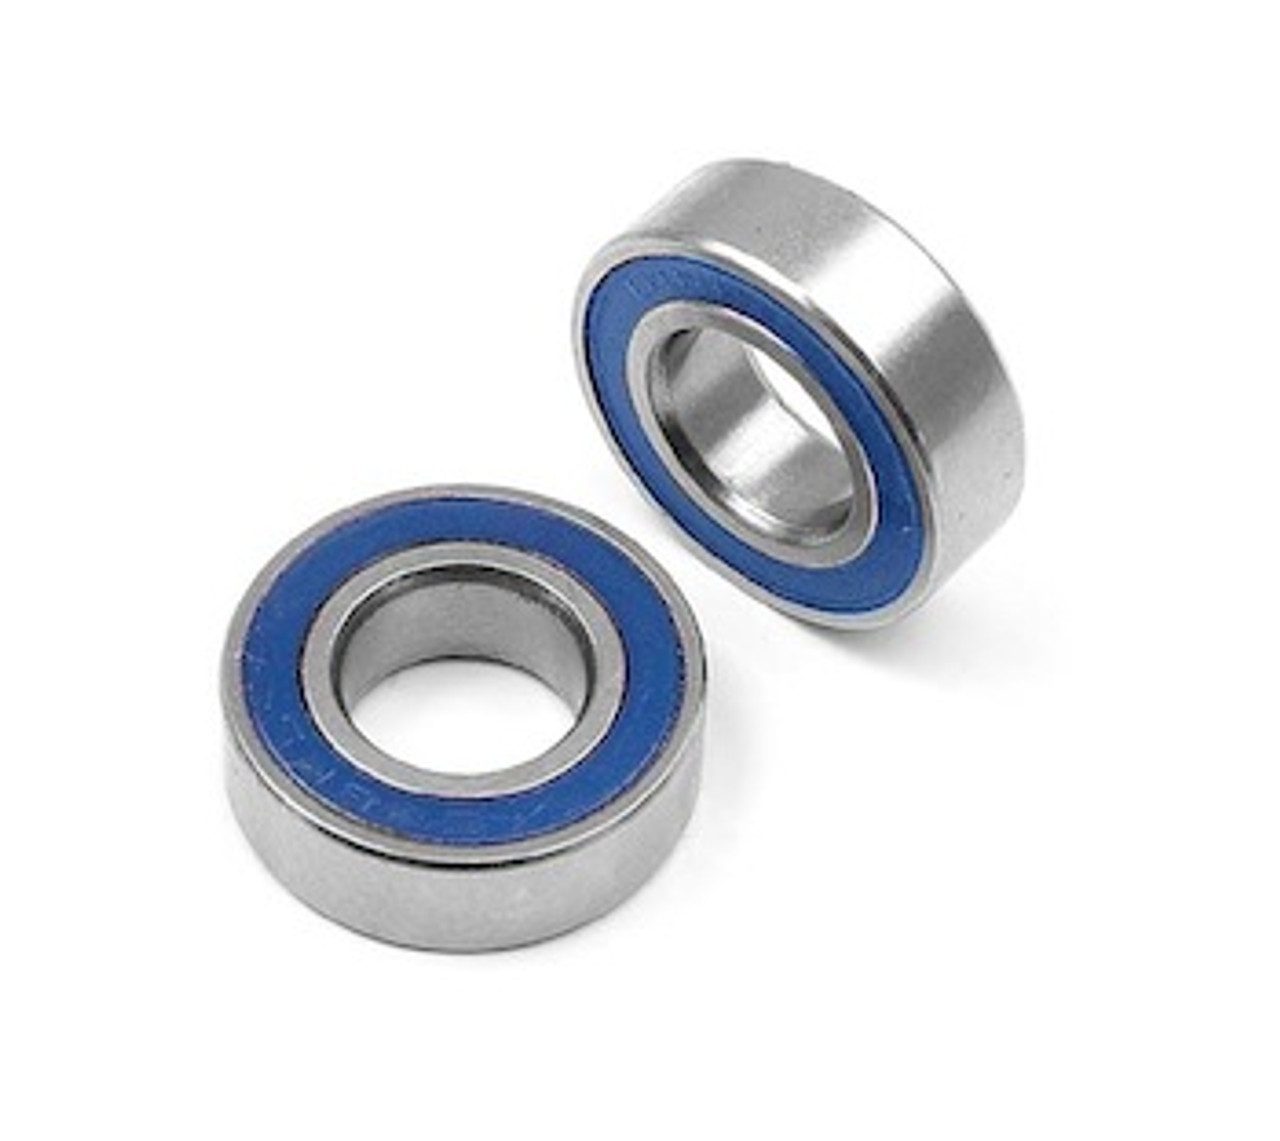 """1/8x3/8x5/32"""" Inch Series Rubber Sealed Bearings (2 Pack) (R2 2RS)"""